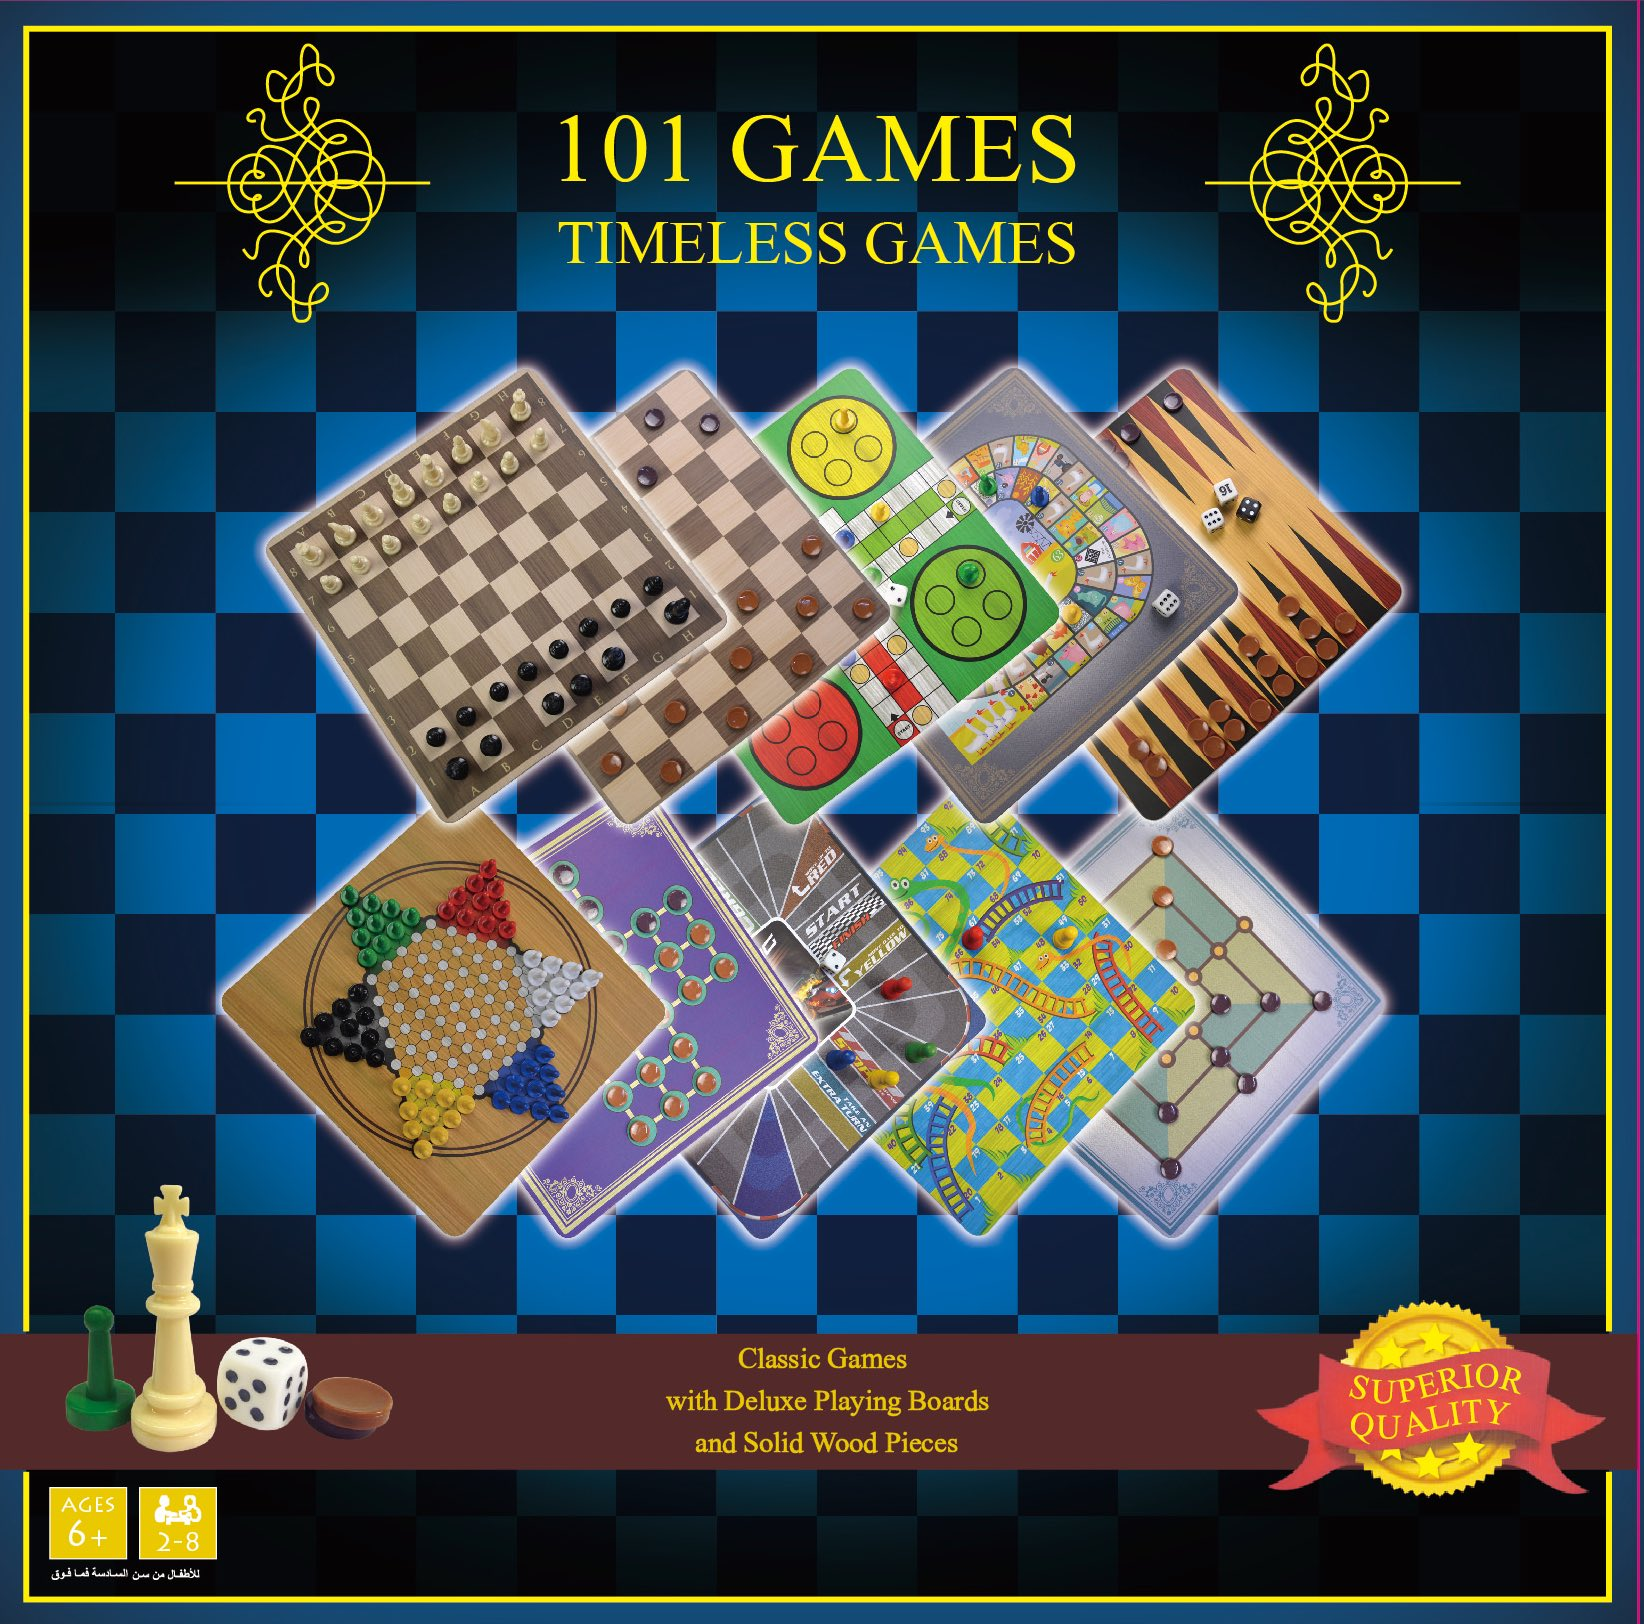 101 GAMES_2